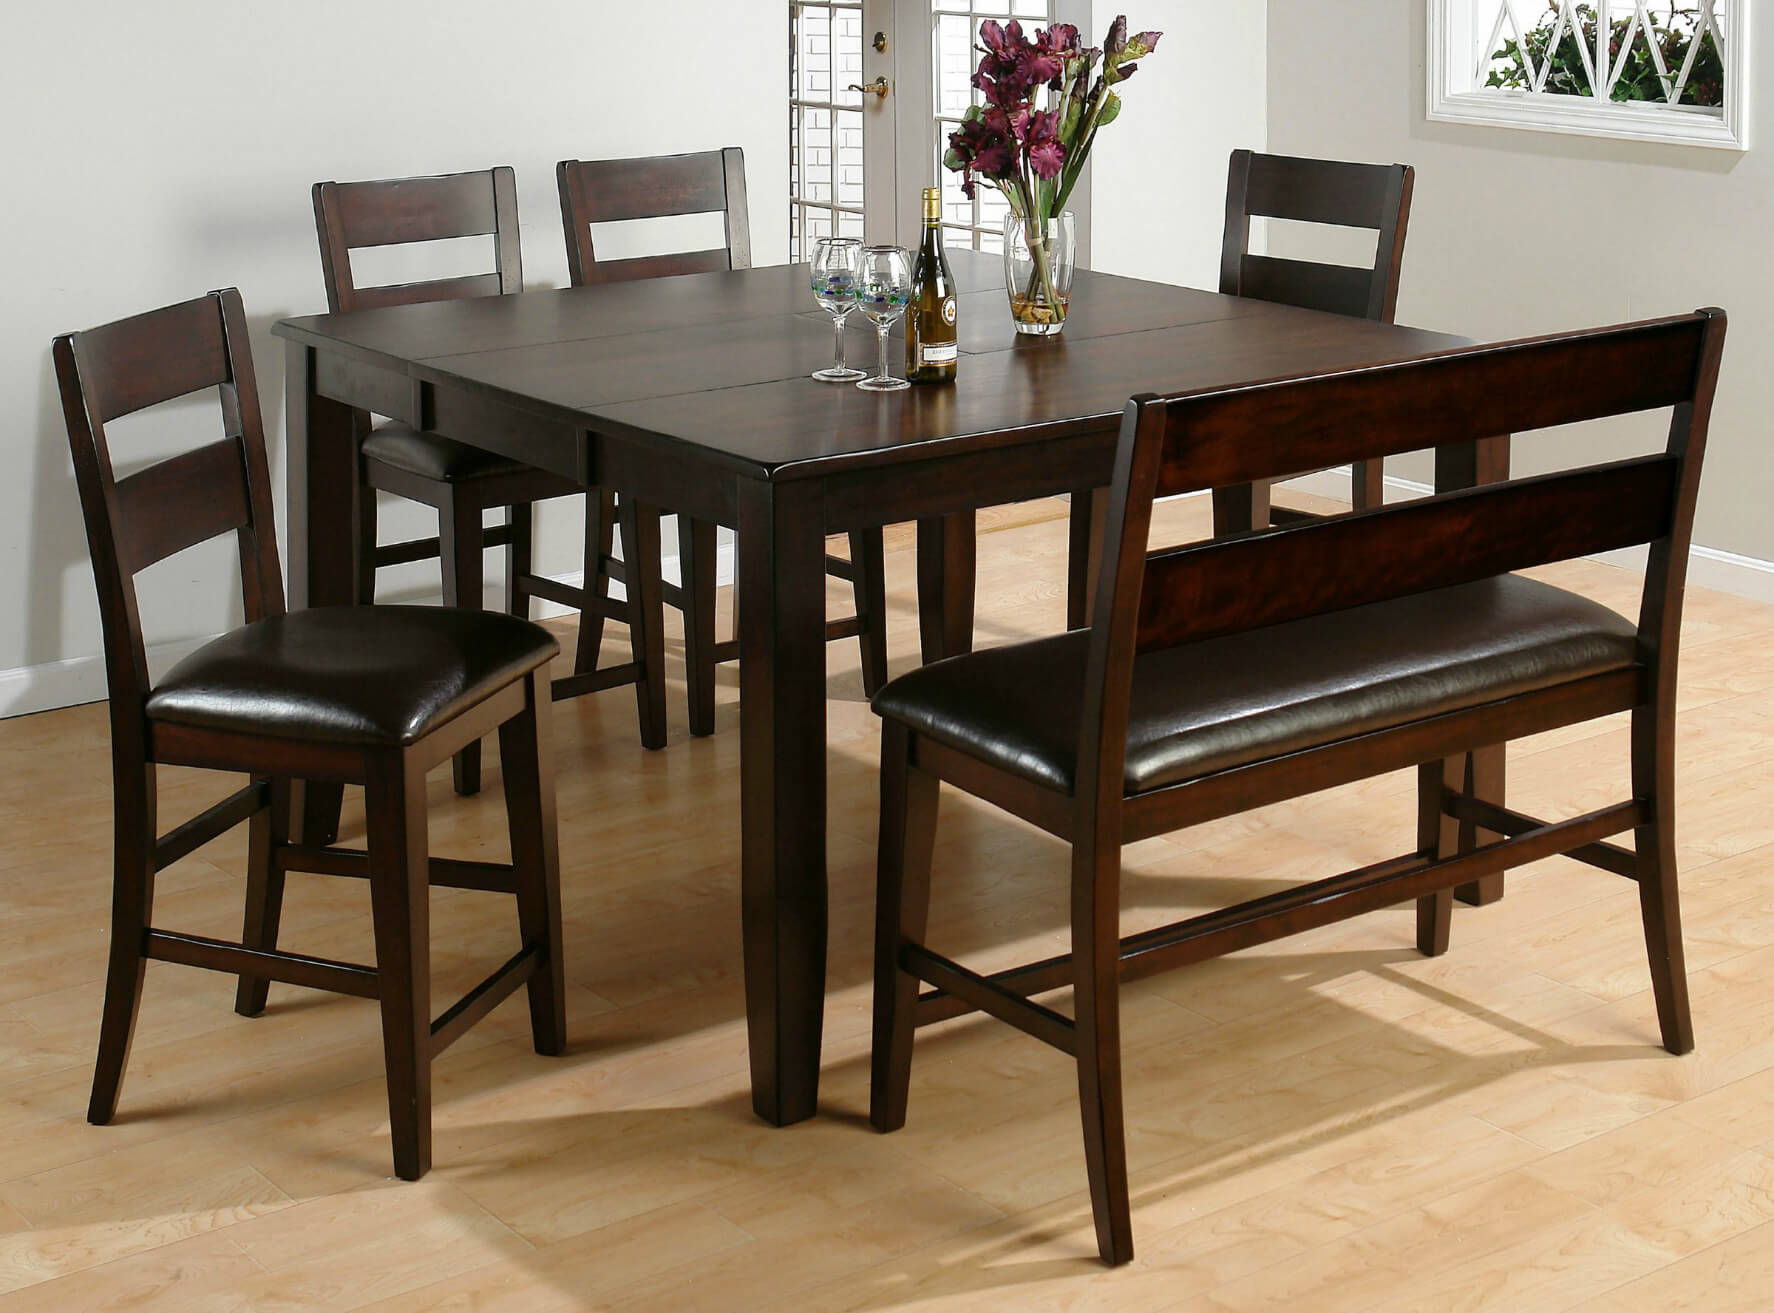 26 big small dining room sets with bench seating for Small square dining room table